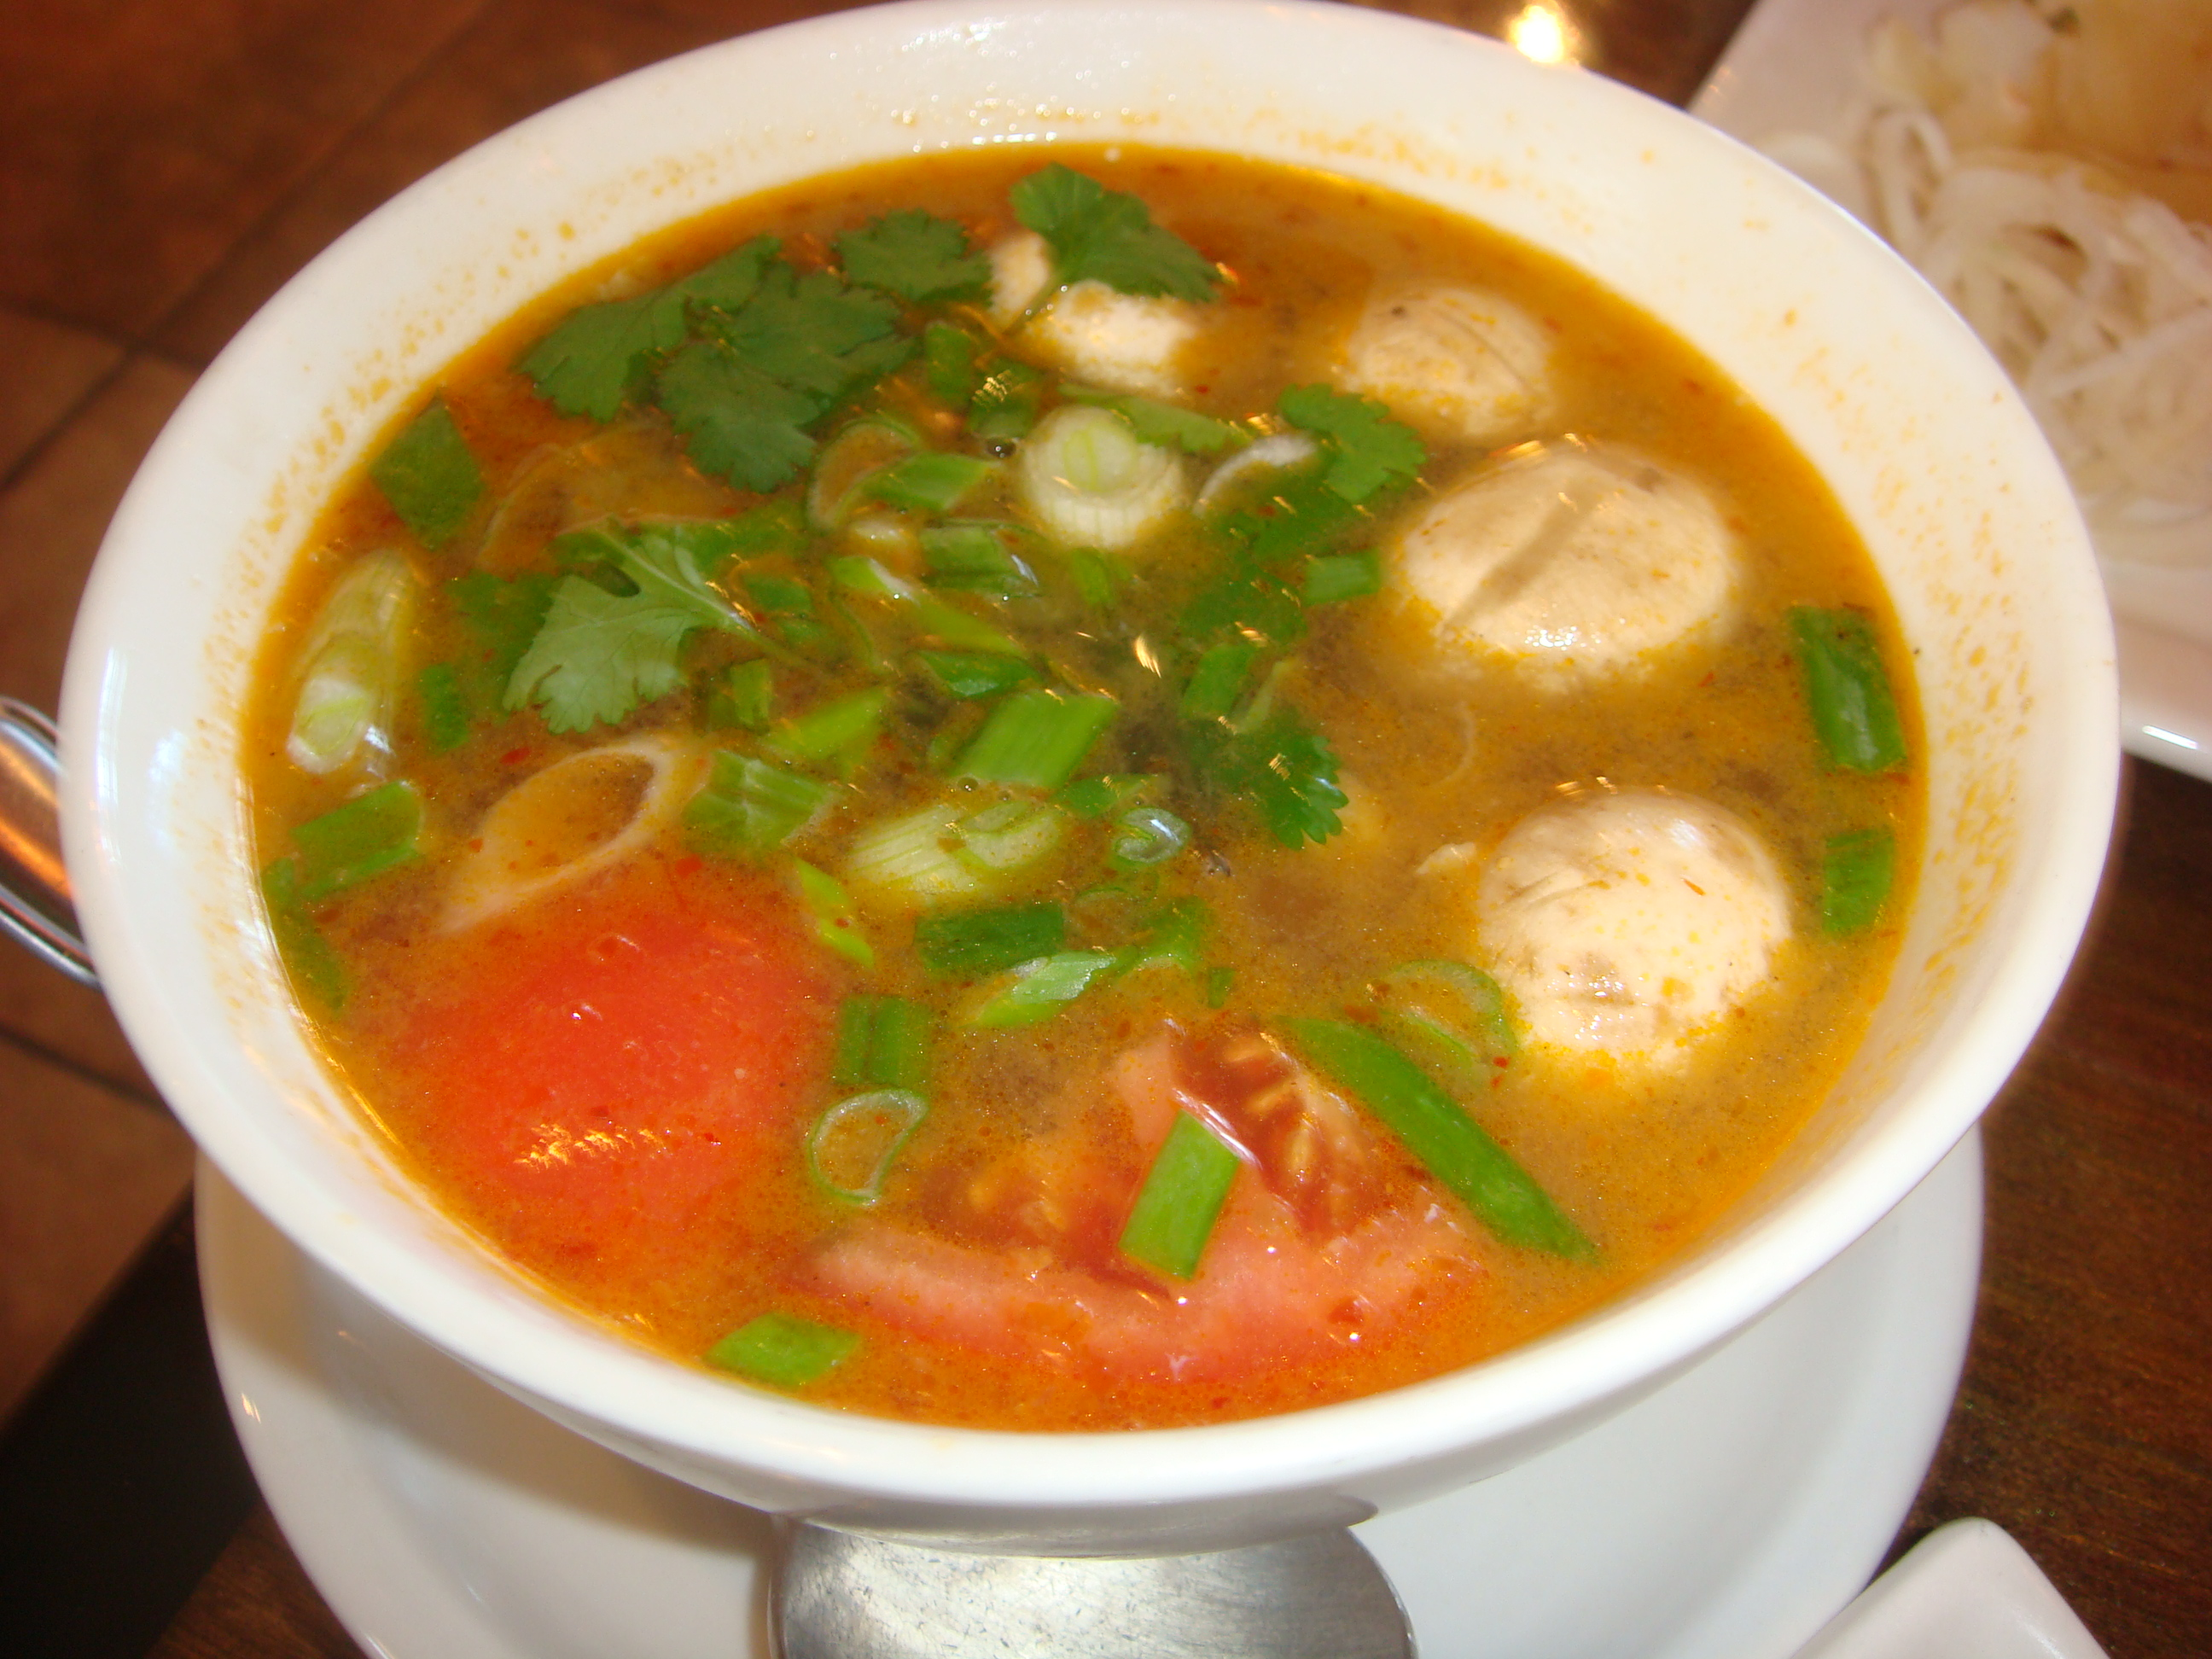 Tom Yum Soup Is An Old Standby This One Is Similar To Others I Ve Eaten The Broth Sour And Spicy This One Was A Little Bit Watery And Not As Great As